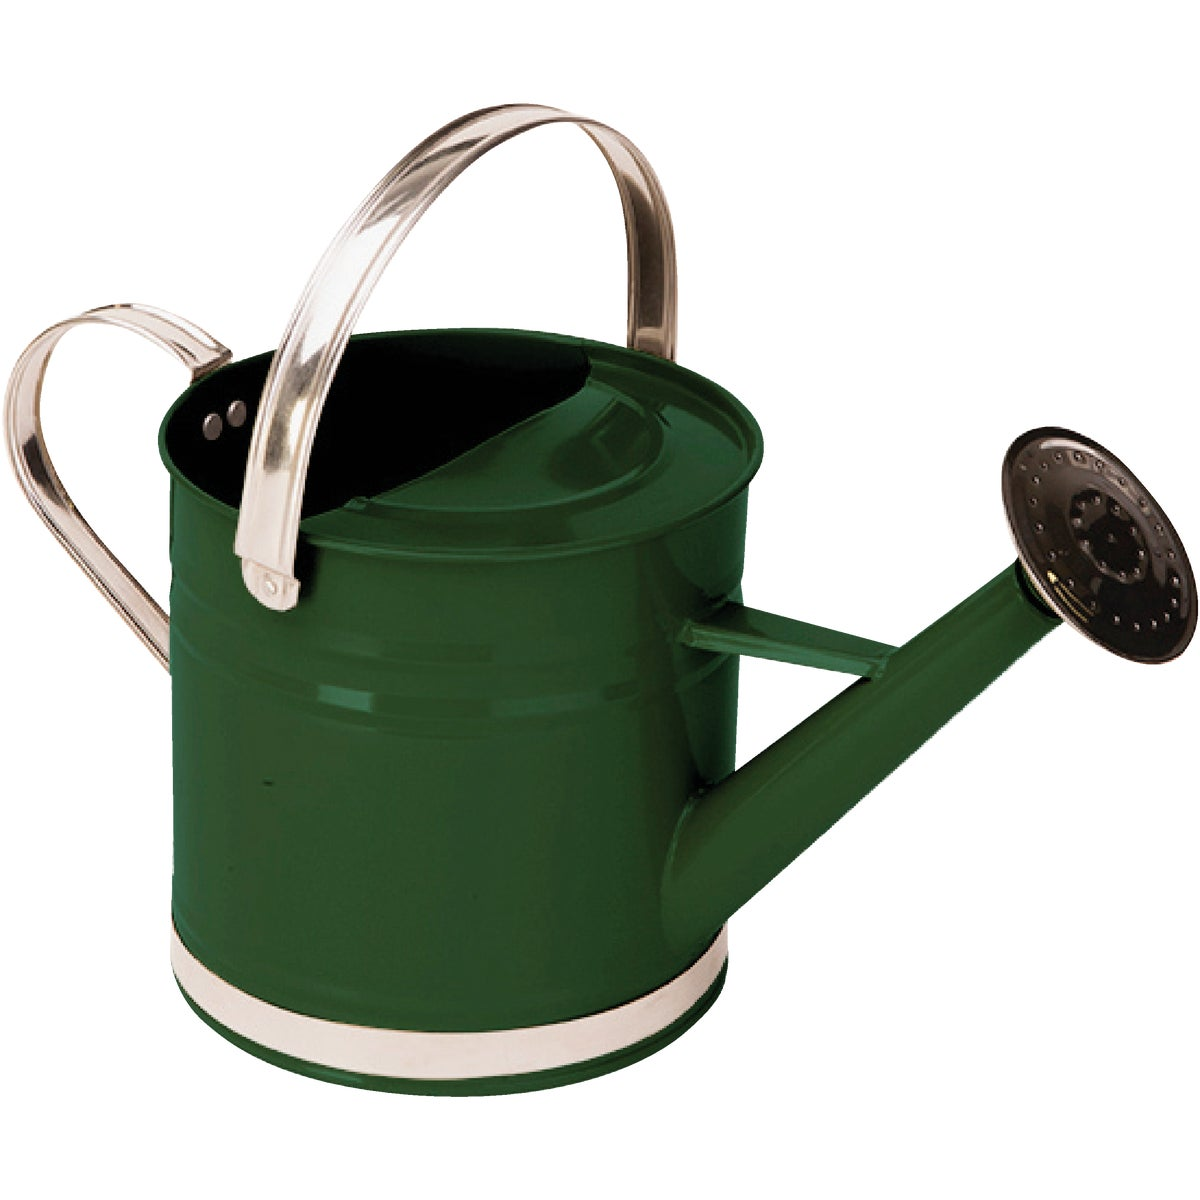 1GAL GRN WATERING CAN - 8NWC by Behrens Mfg